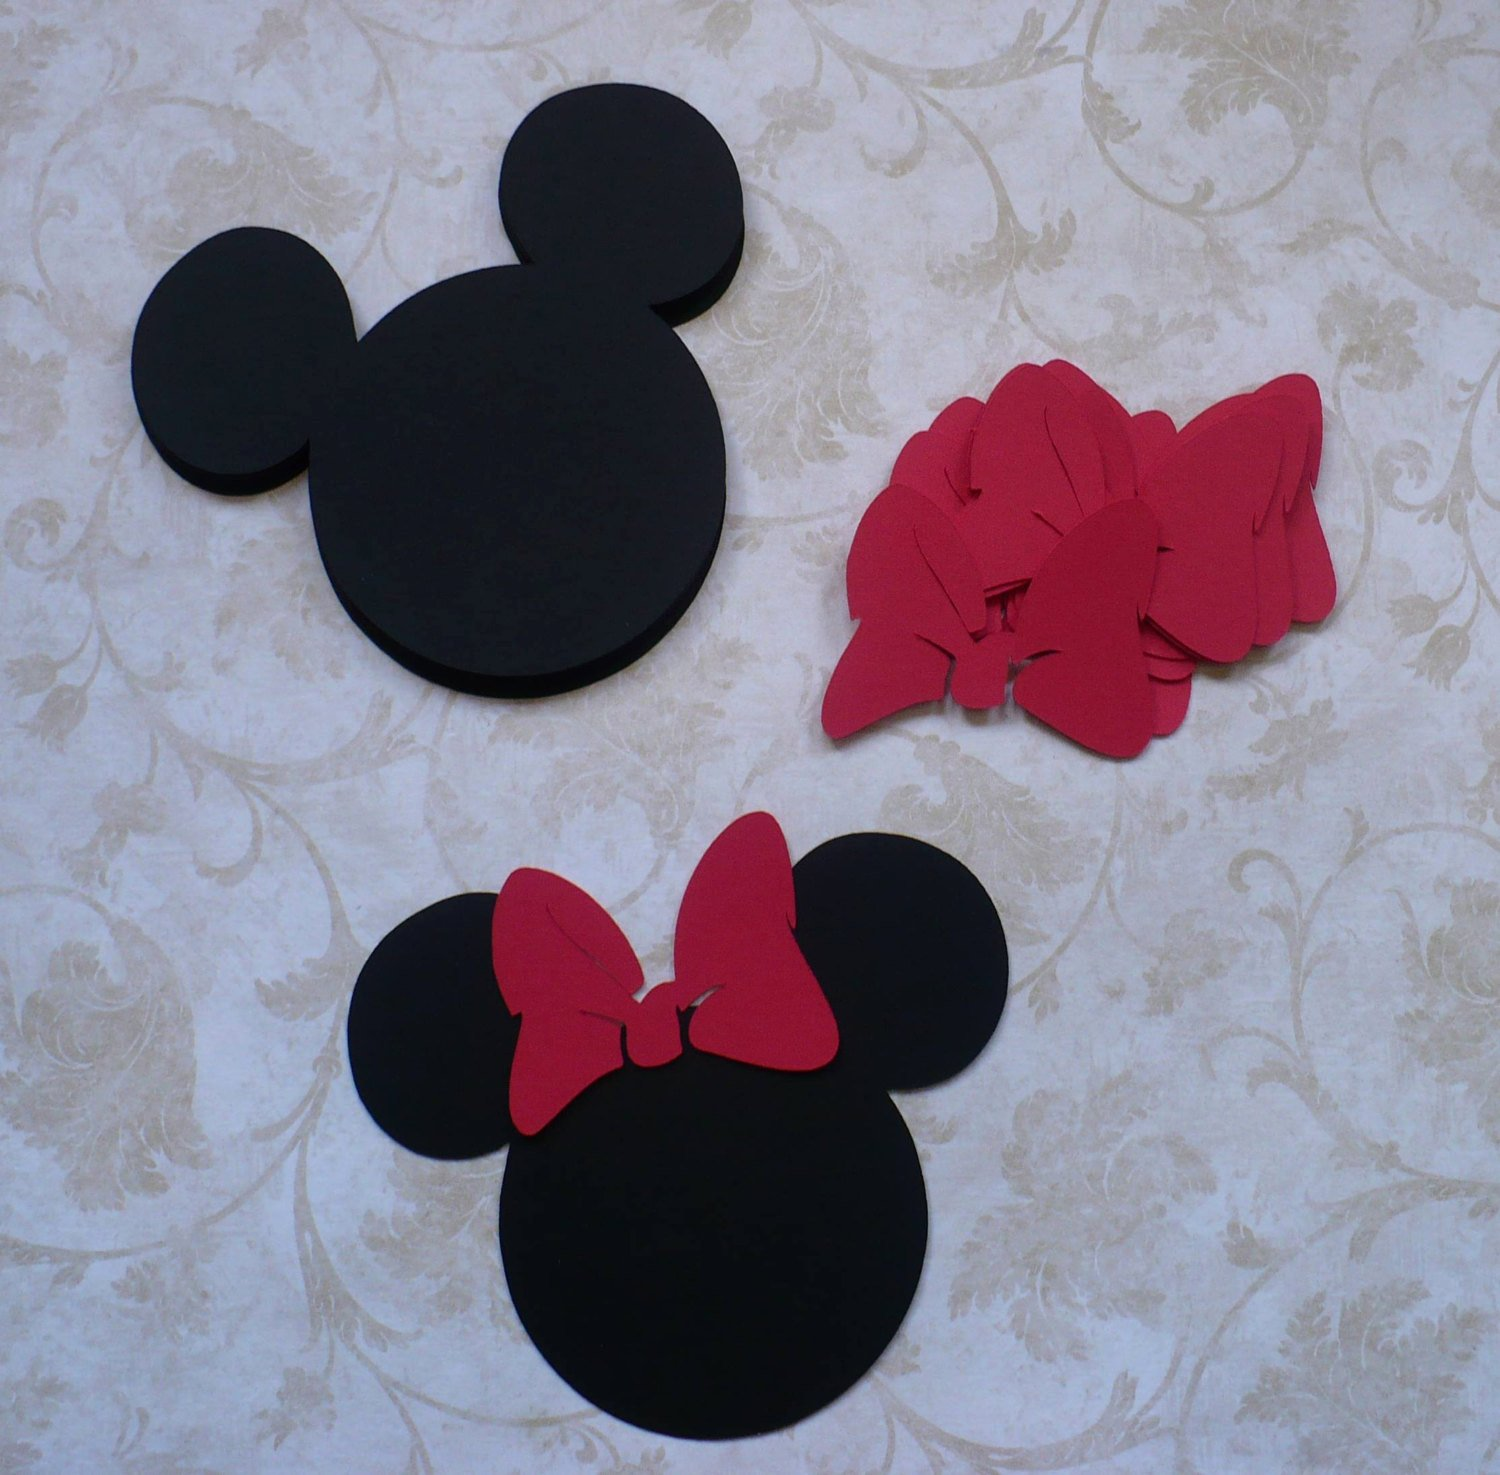 Minnie Mouse Cut Out Head Unique 12 Minnie Mouse Head Shapes Red Bow 3 5 Inch Die Cut Pieces